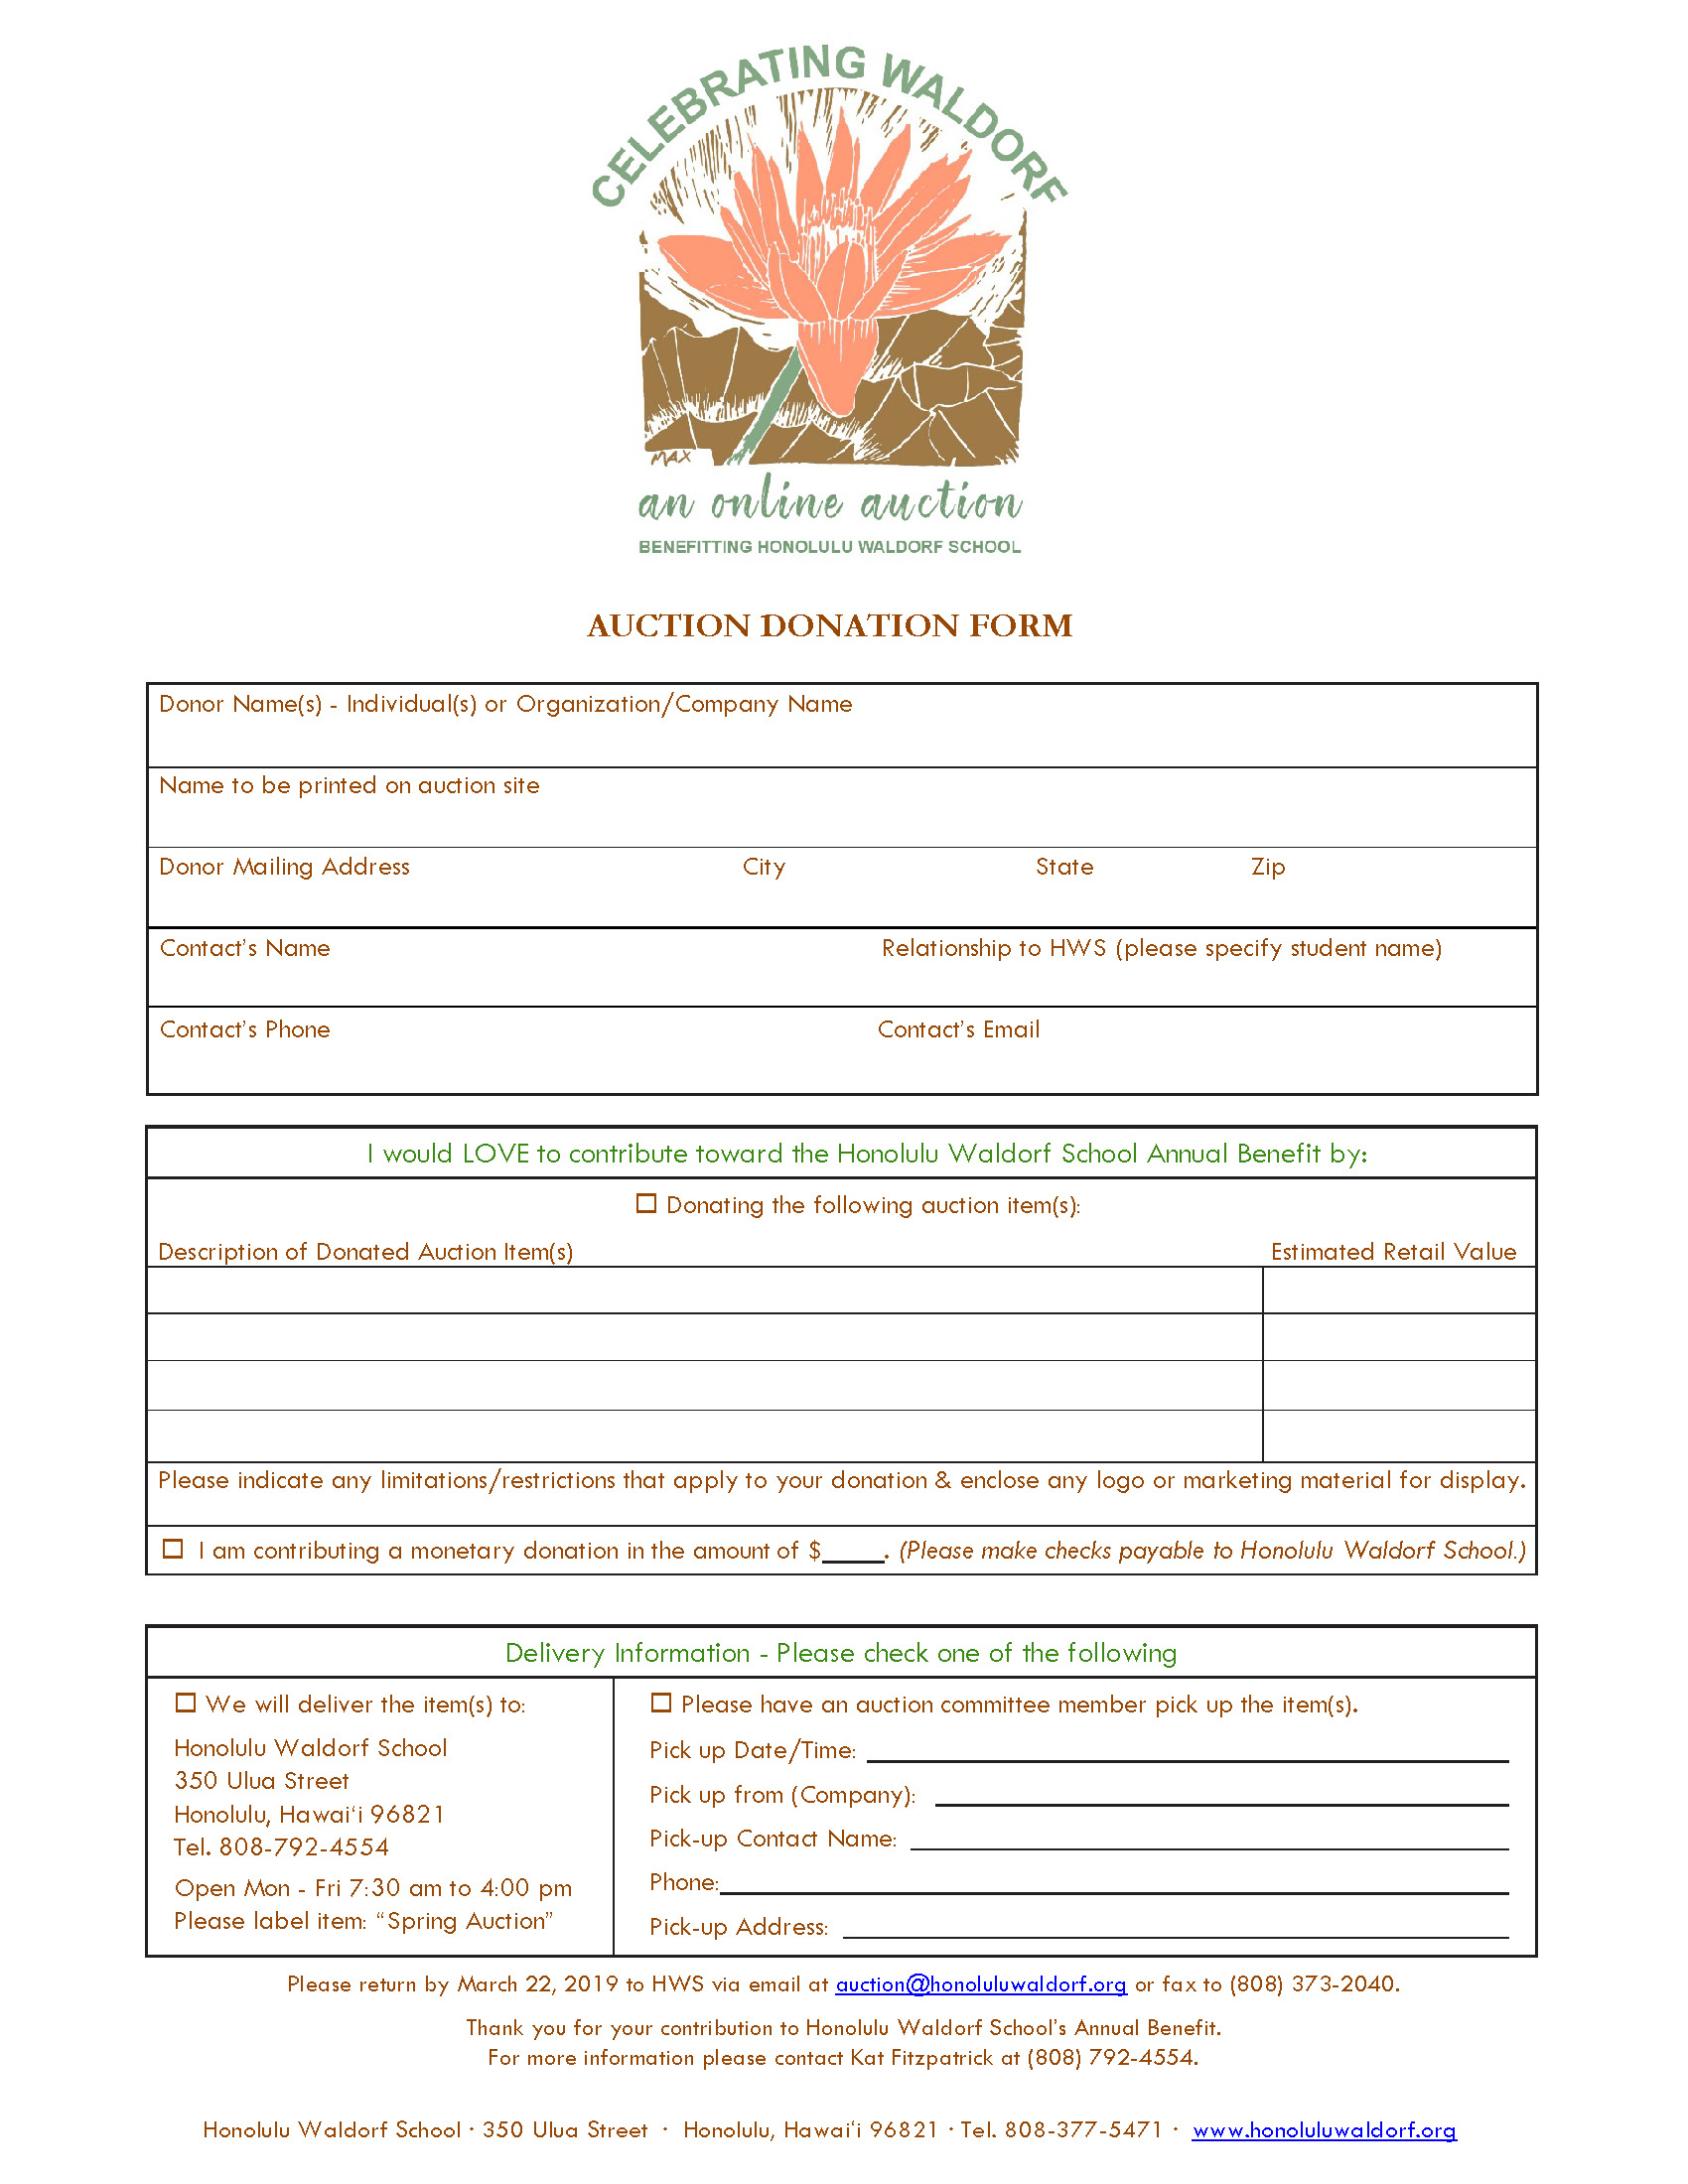 2019_USE THIS_Auction Donation Form.jpg